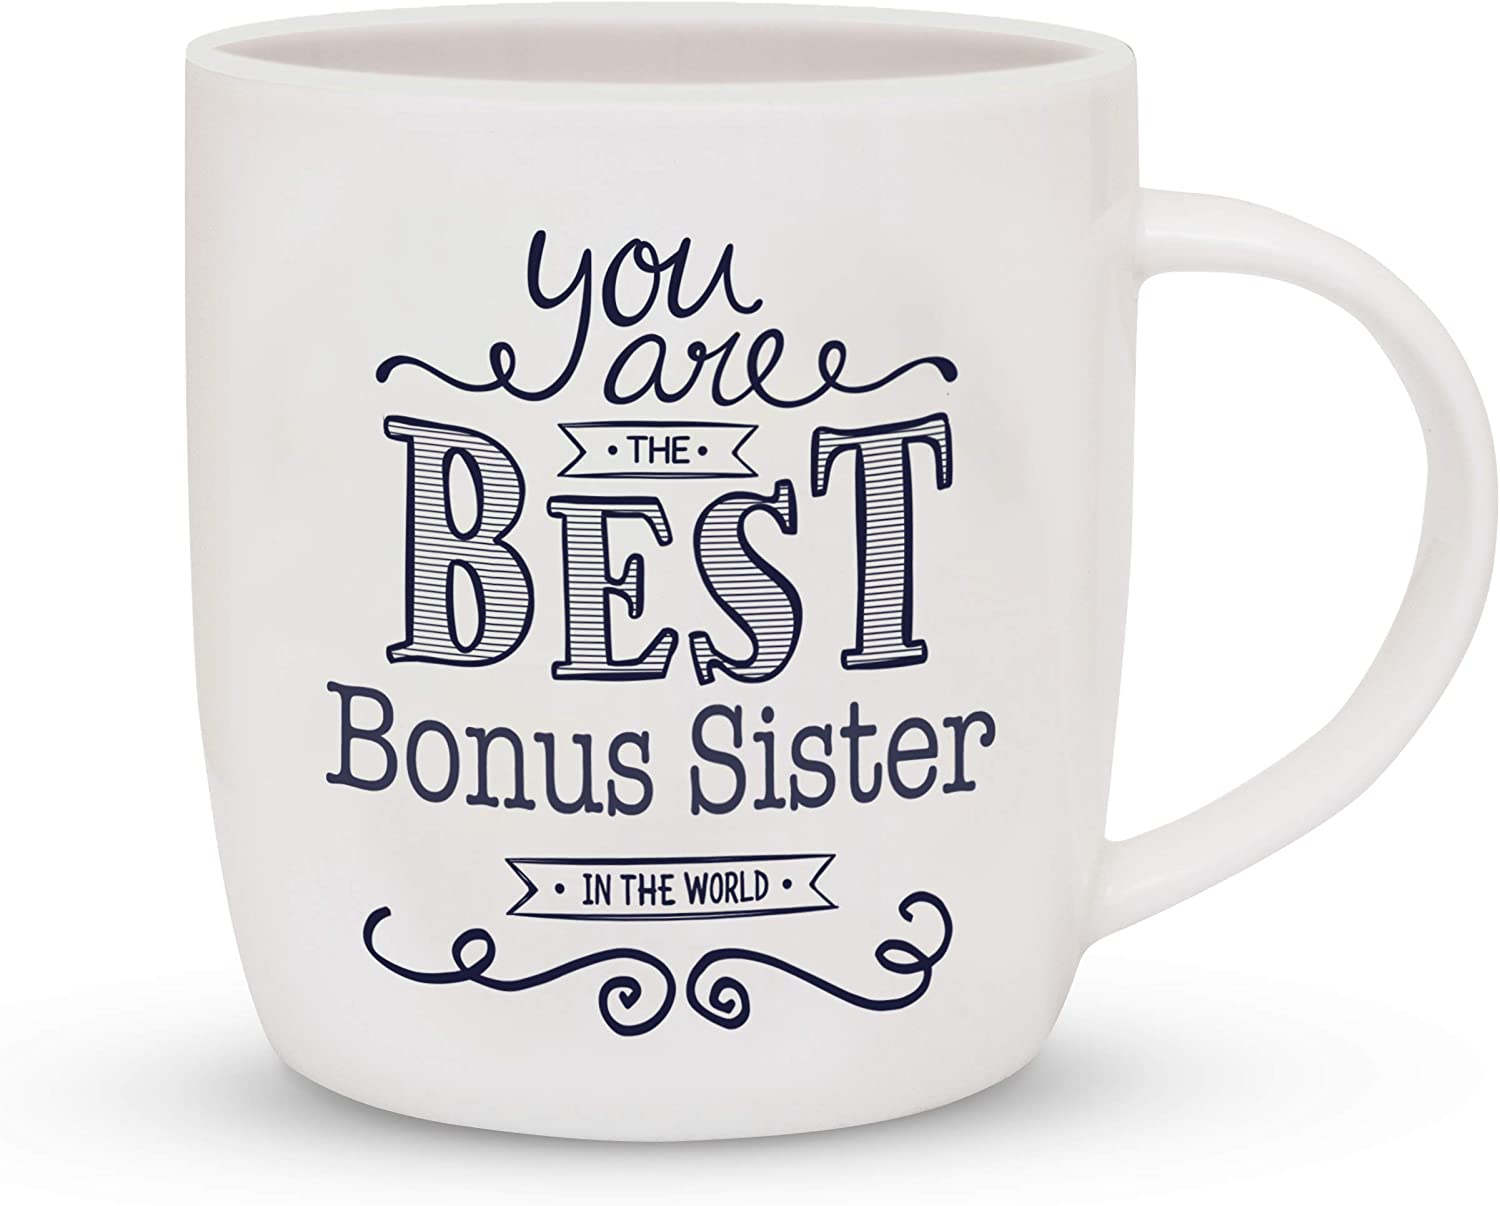 Triple Gifffted Bonus Sister - Best Sister In Law Ever Coffee Mug, Funny Gifts For Birthday and Sisters Day, Best Friend Gifts for Women, Rakhi Mugs, Valentines, Christmas Cup